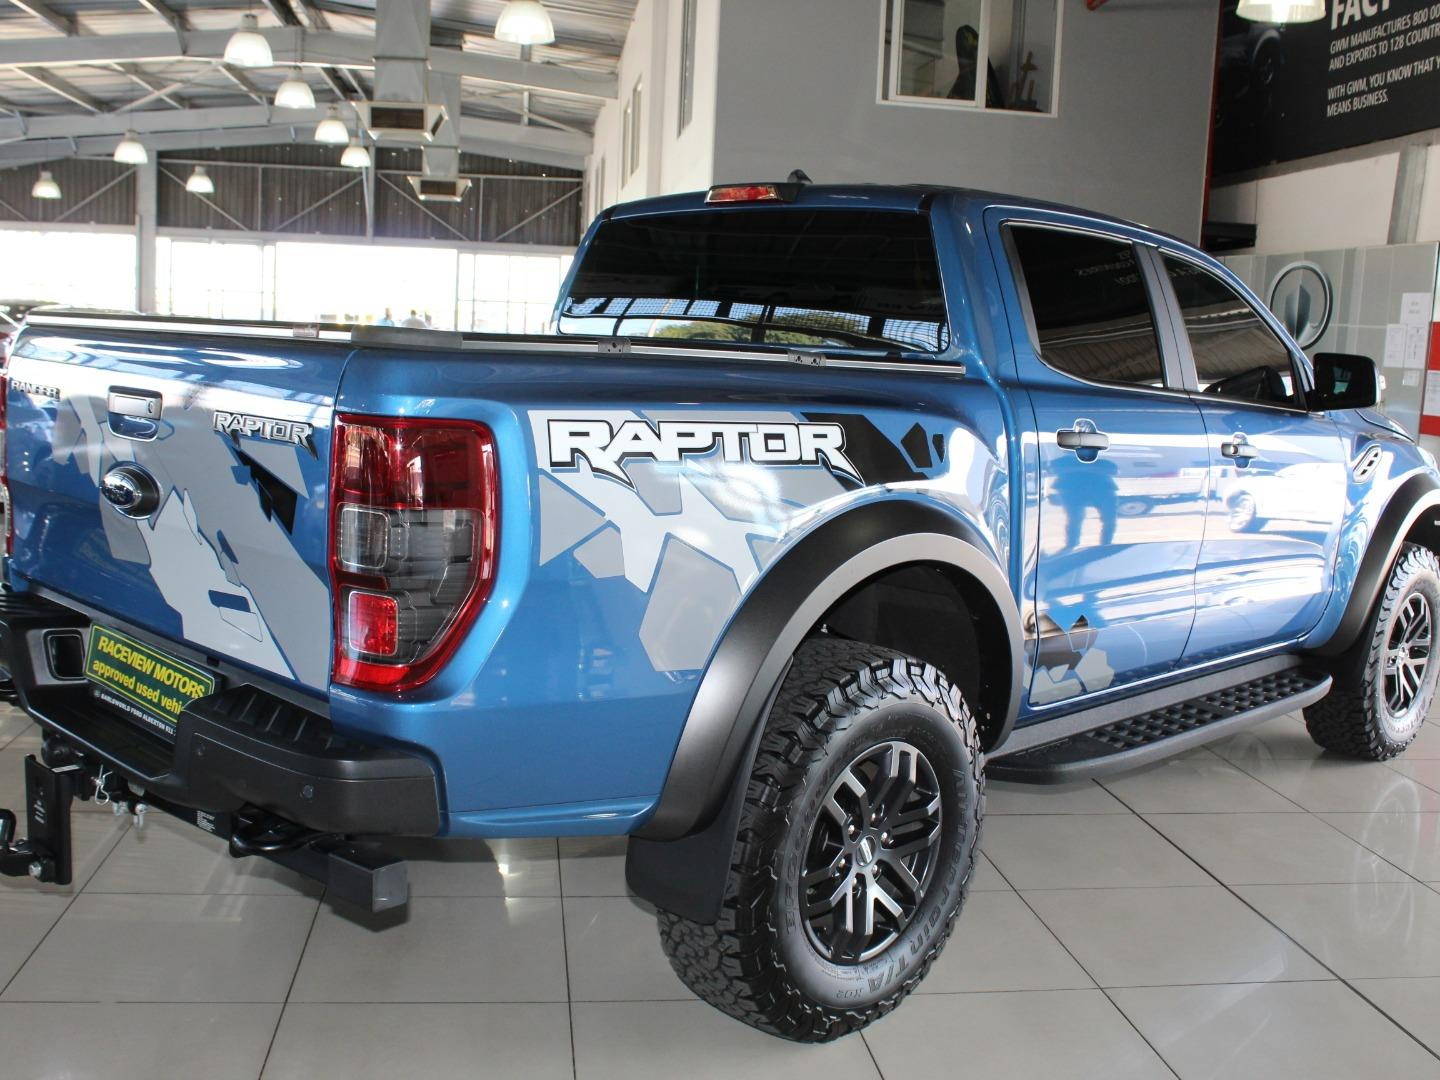 2019 Ford Ranger 2.0Bi-Turbo Double Cab 4x4 Raptor- Picture 5